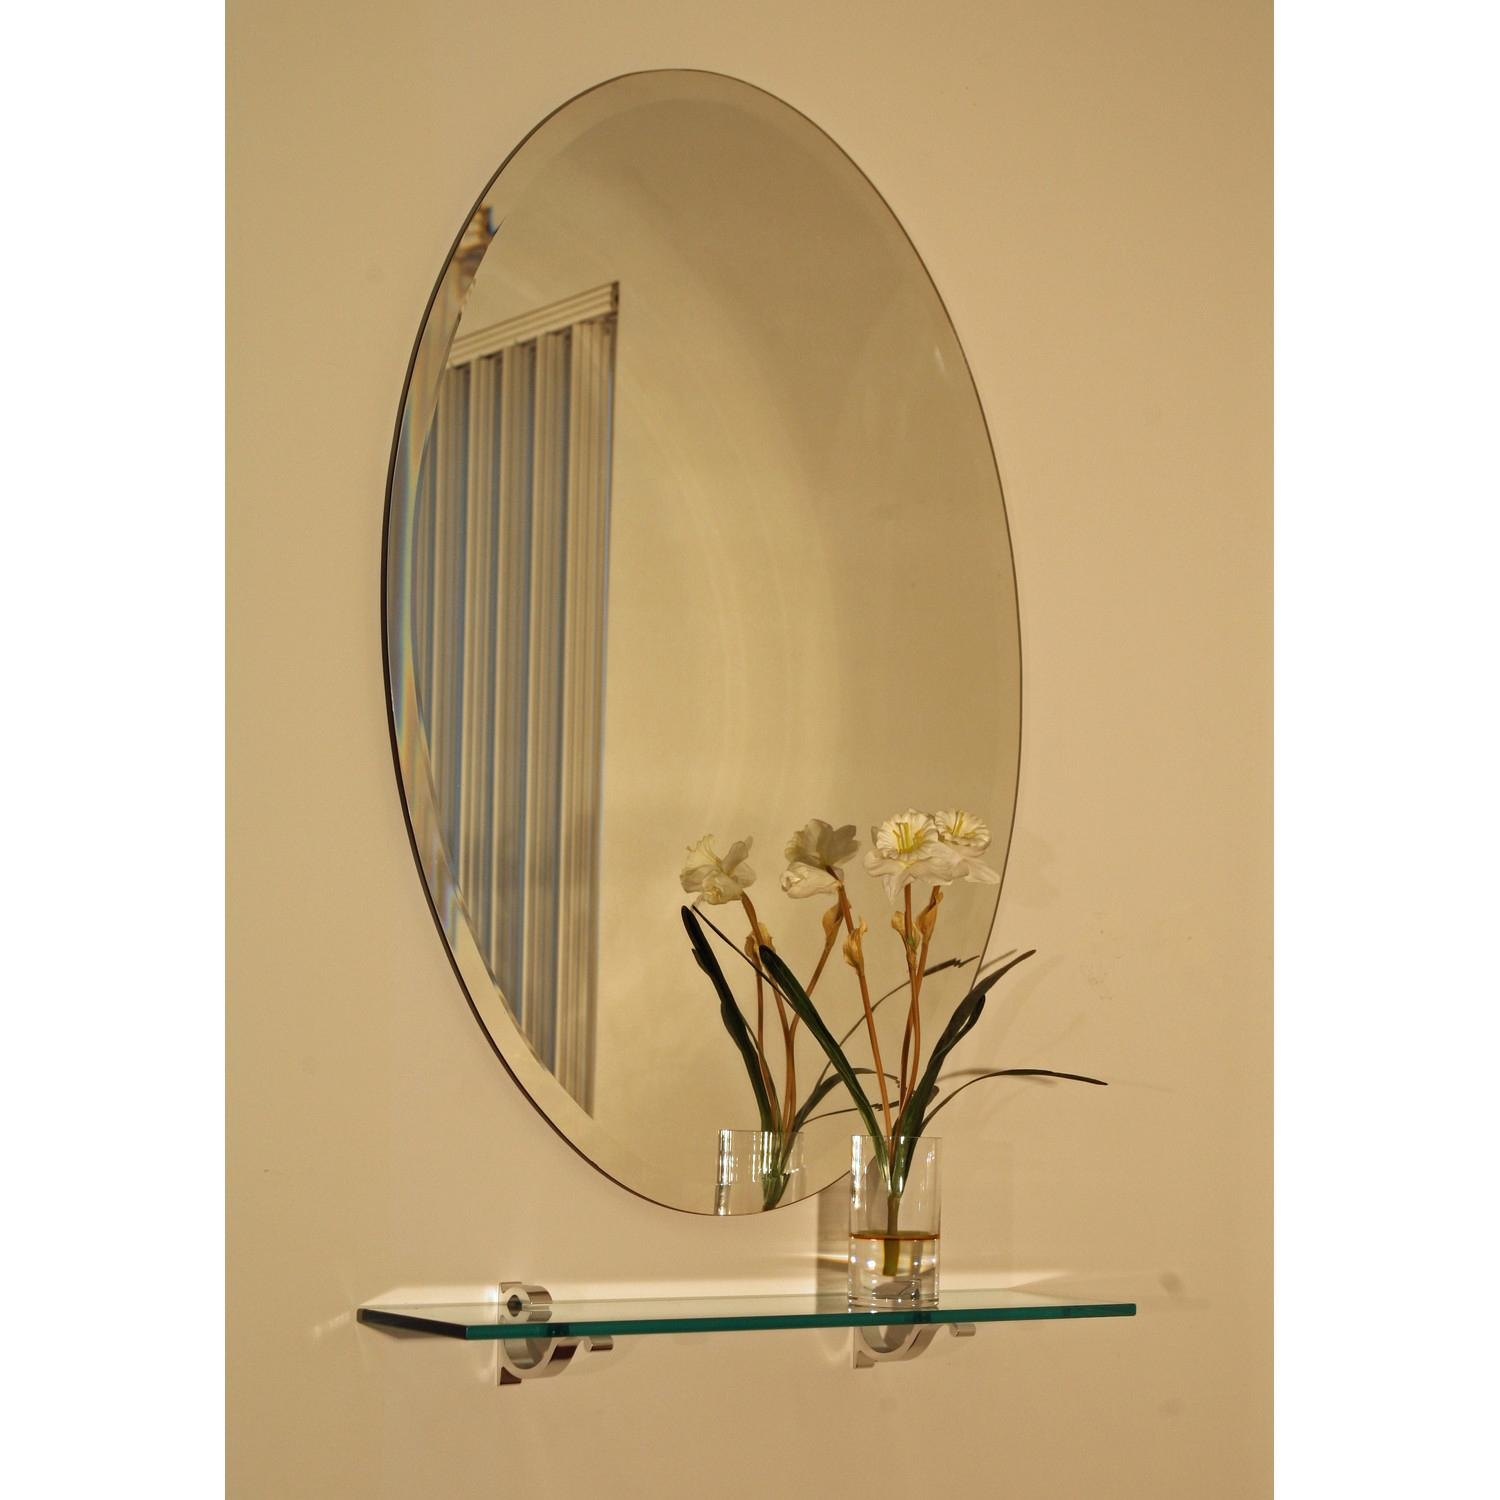 Regency 24 X 36 Oval Beveled Edge Mirror Spancraft Wall Mirror Inside Bevelled Oval Mirror (Image 11 of 20)